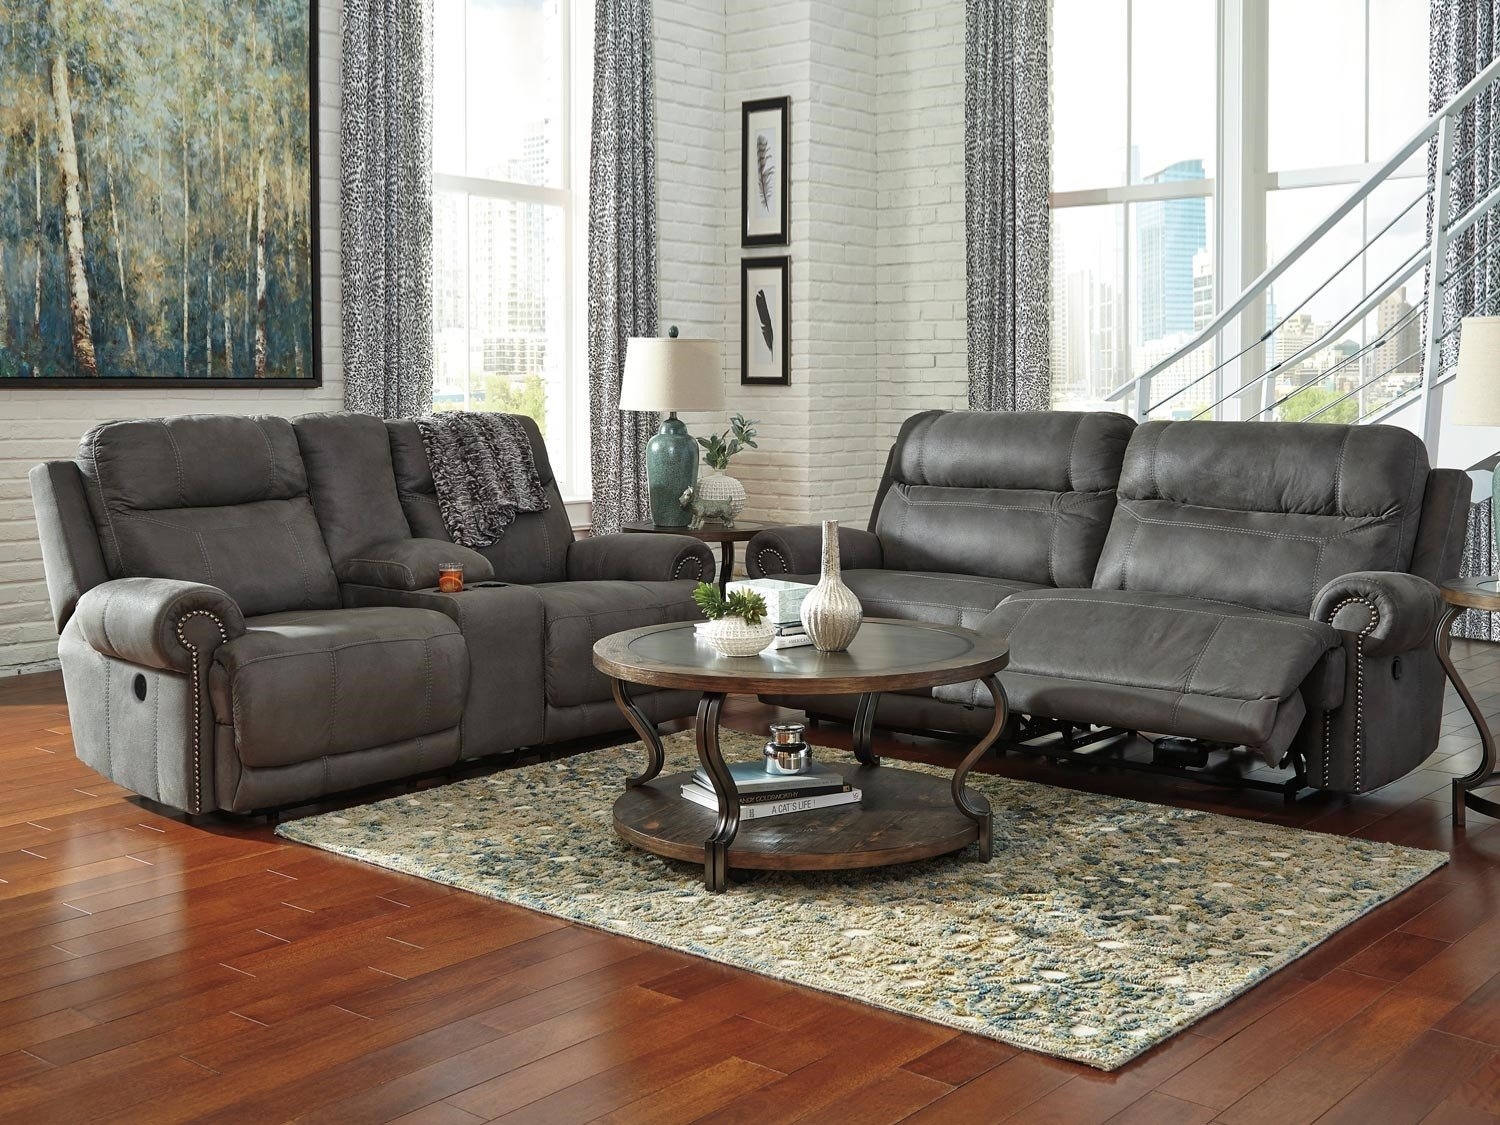 Ashley Furniture Full Size Bedroom Set Inspirational Austere Reclining 2 Piece Living Room Set Gray